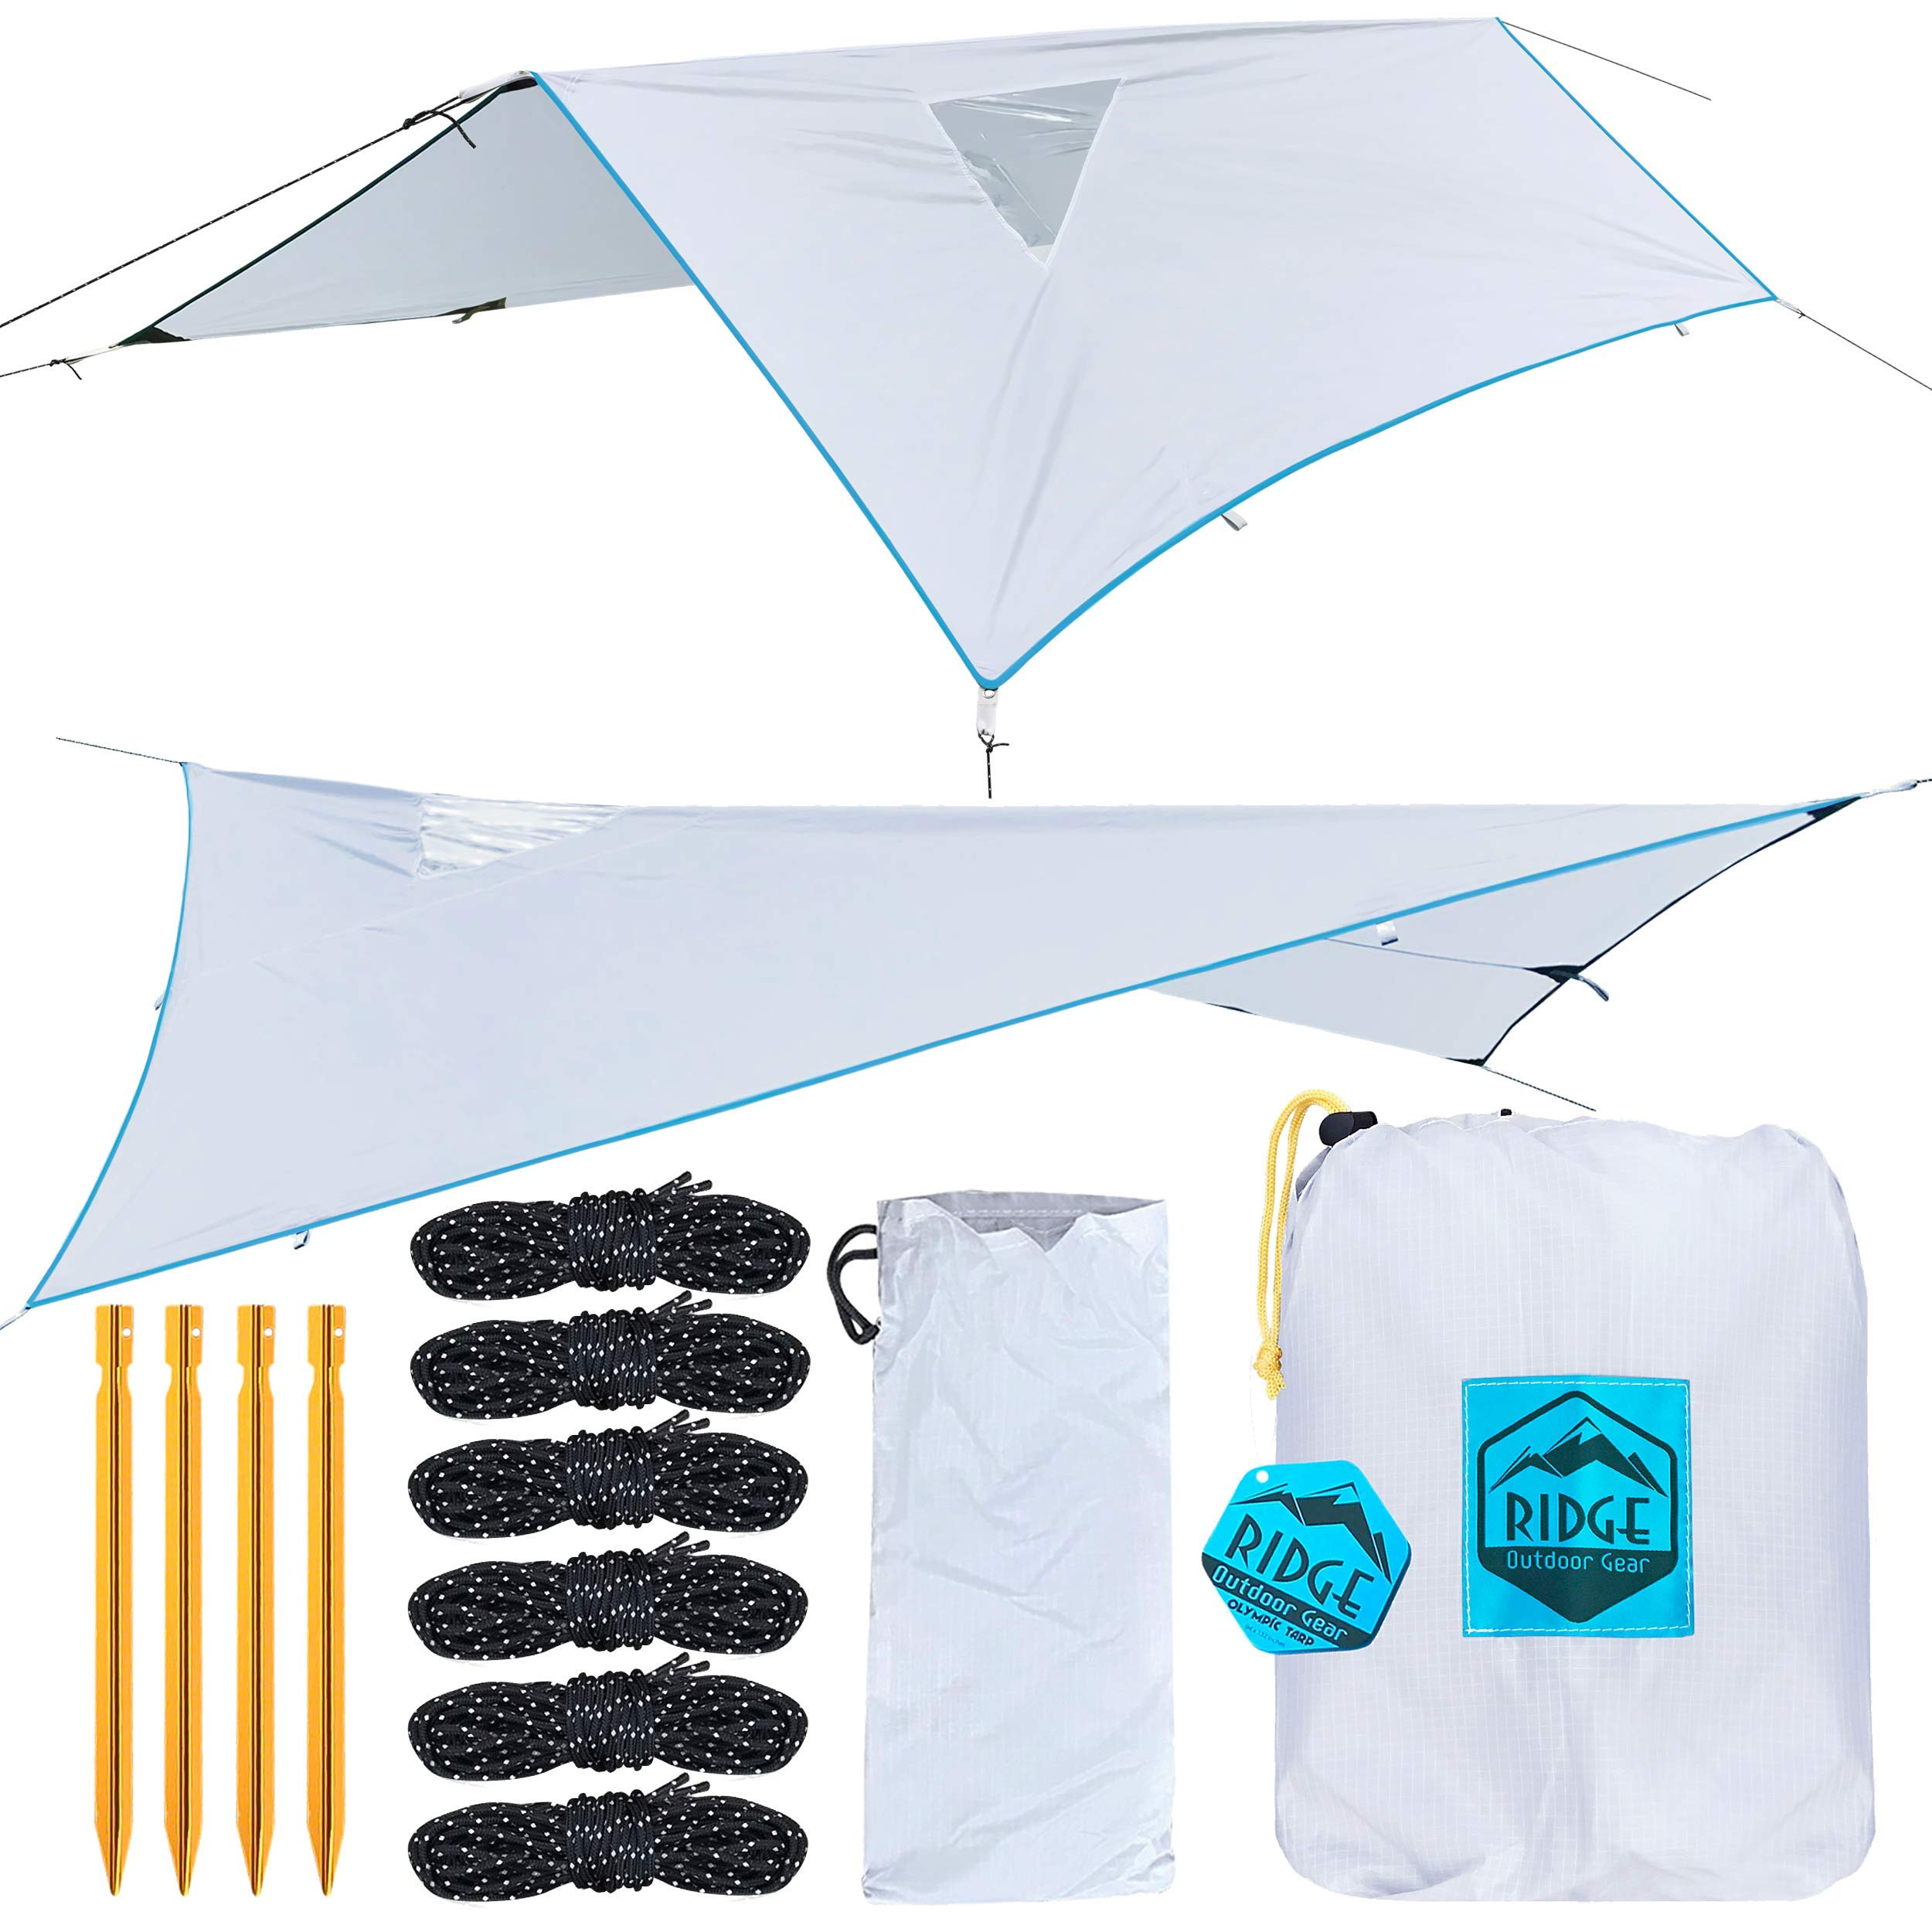 Ridge Outdoor Gear Rainfly Tent Tarp for Camping Hammock, Ripstop Polyester, 11 x 7.83 ft, Window Sky-View, Storm Shelter by Ridge Outdoor Gear